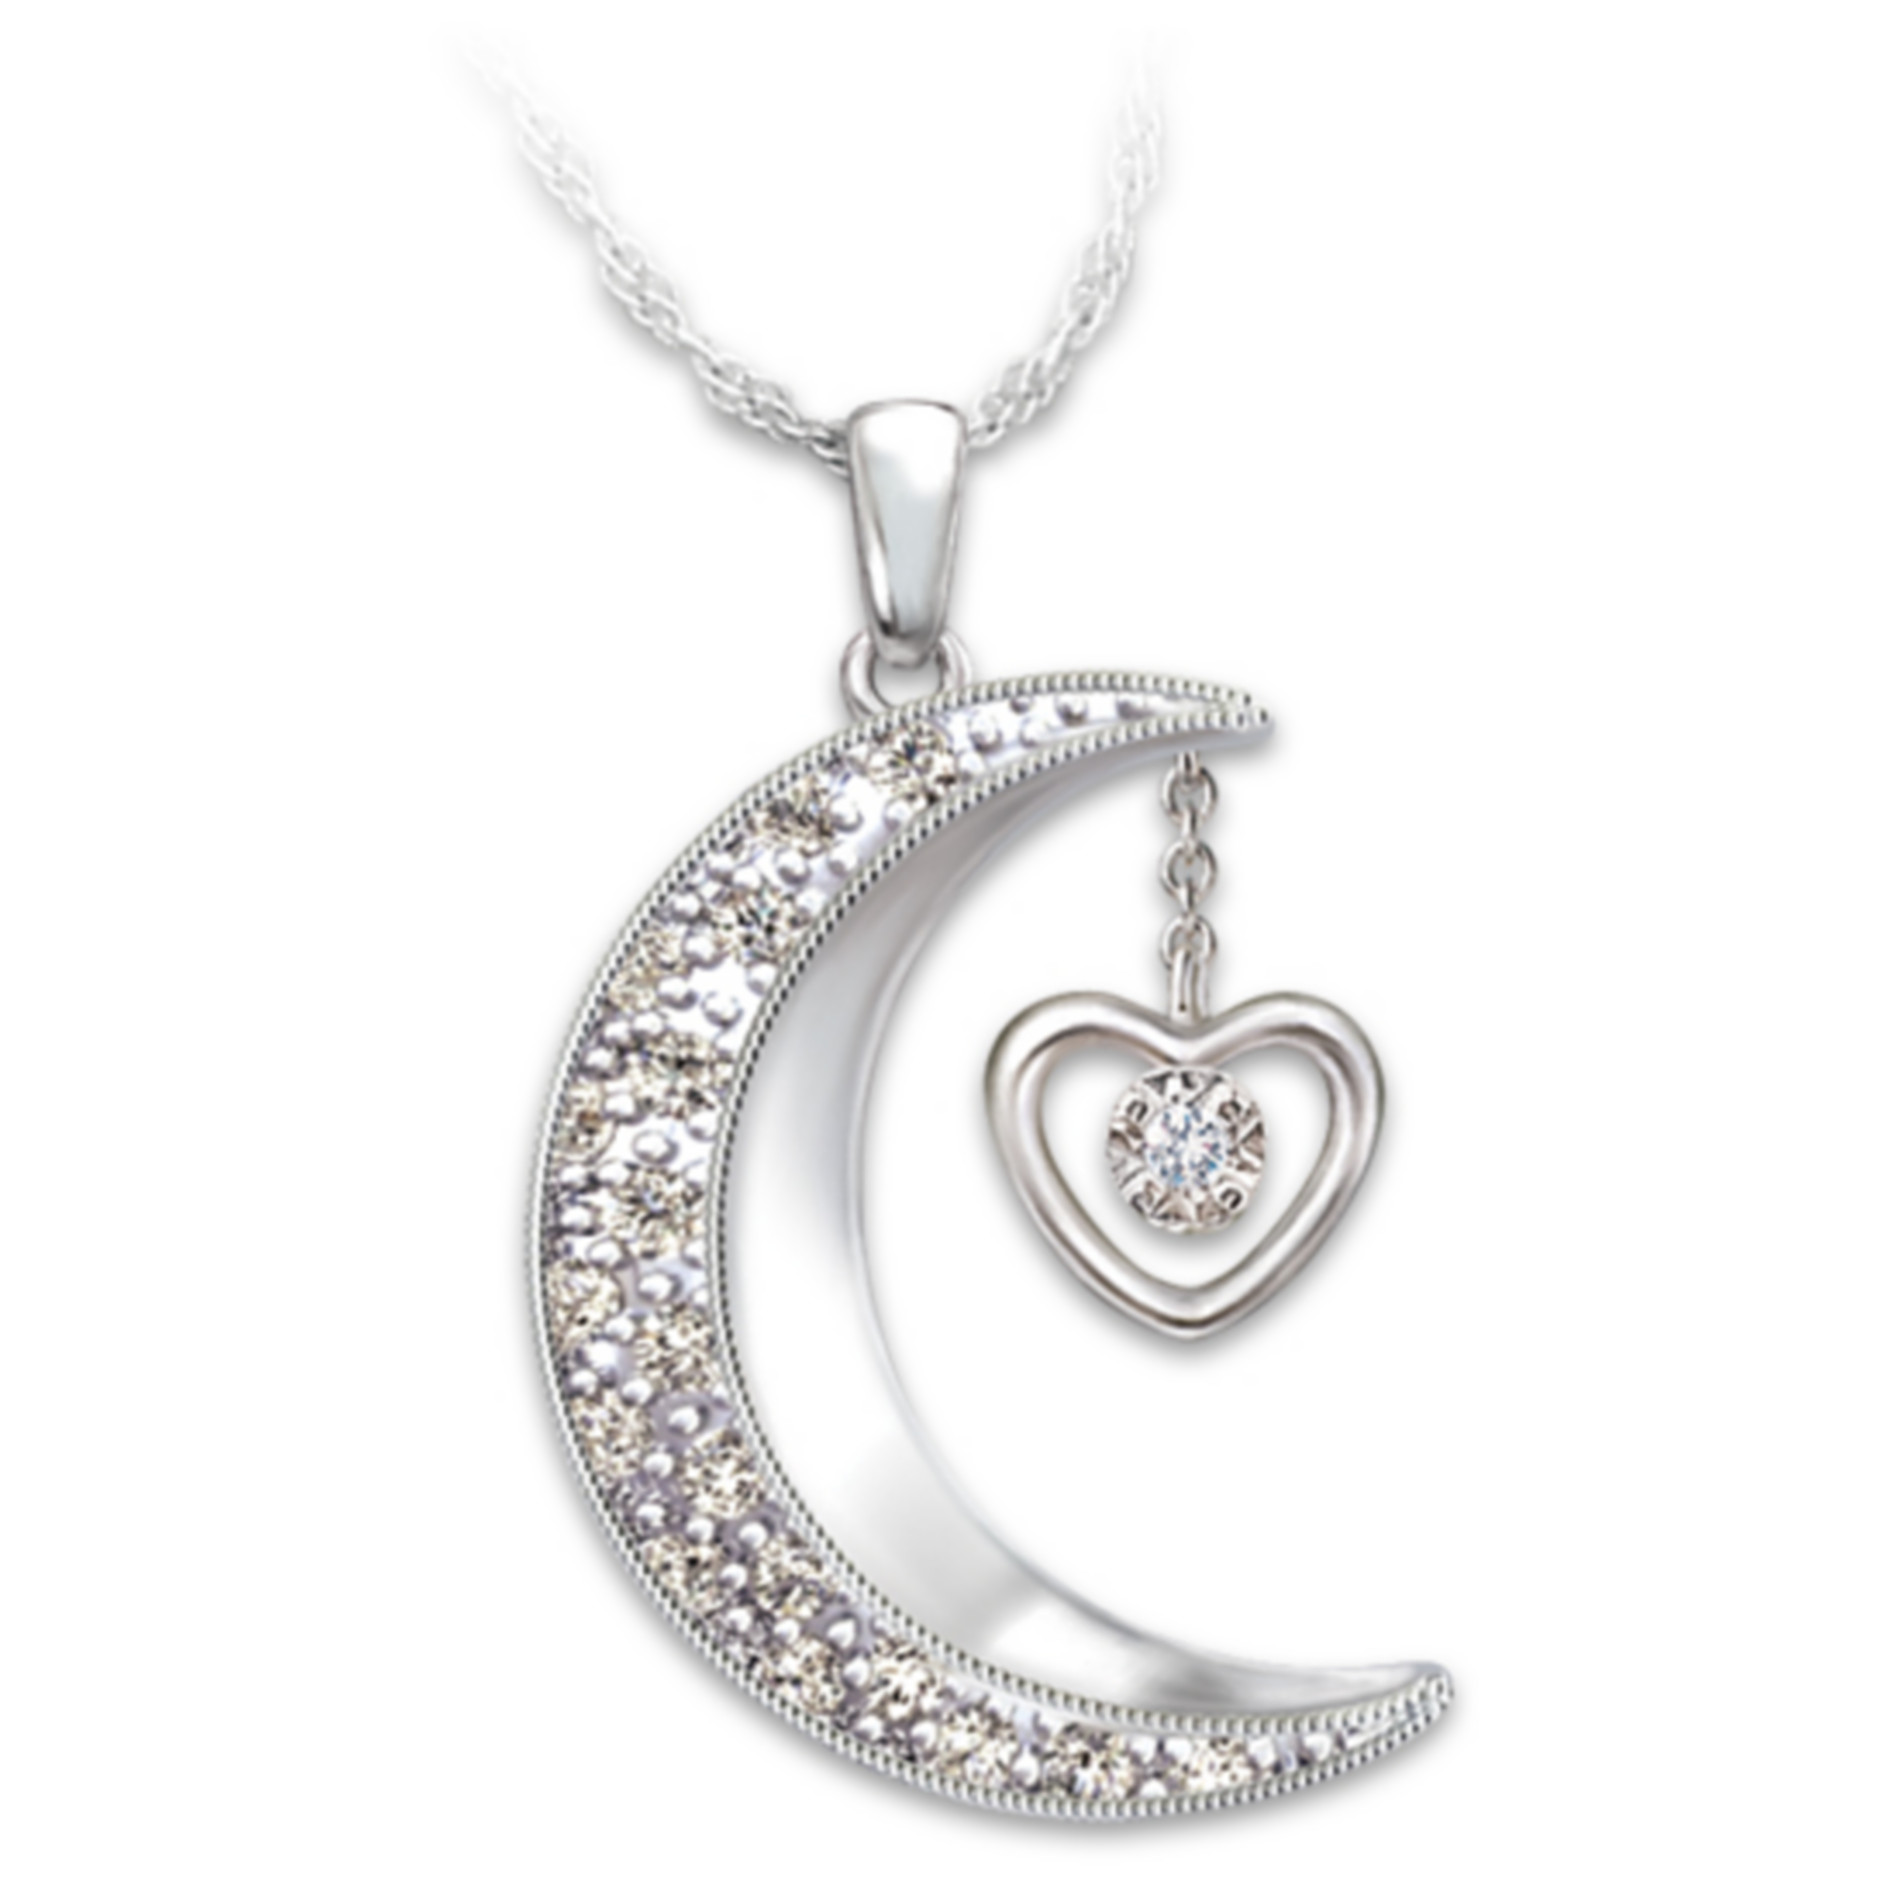 The Bradford Exchange Moon-Shaped Diamond Pendant Necklace: I Love You To The Moon And Back at Sears.com